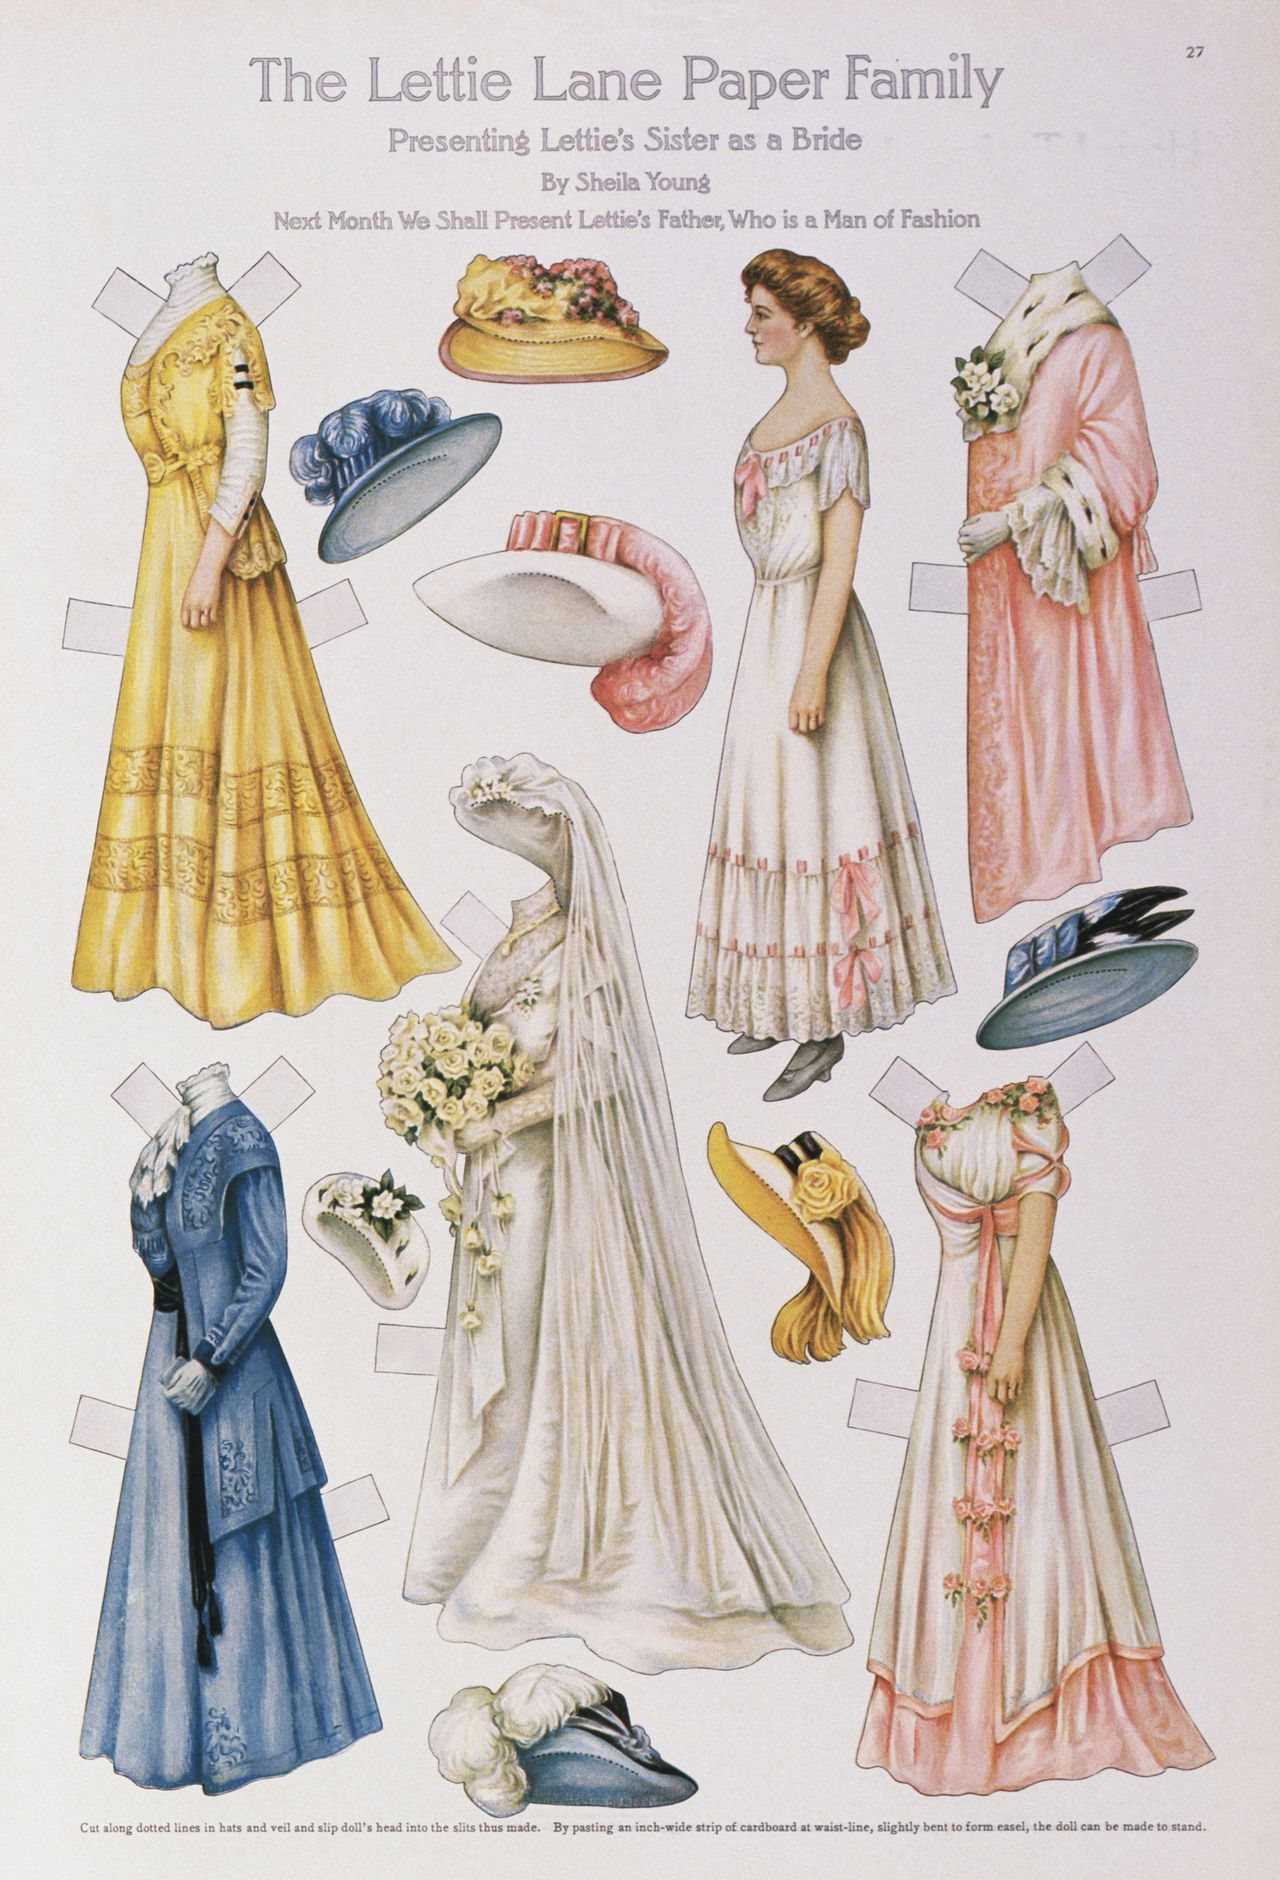 1909 --- Fashion Paper Dolls: Bridal Trousseau --- Image by © Cynthia Hart Designer/CORBIS